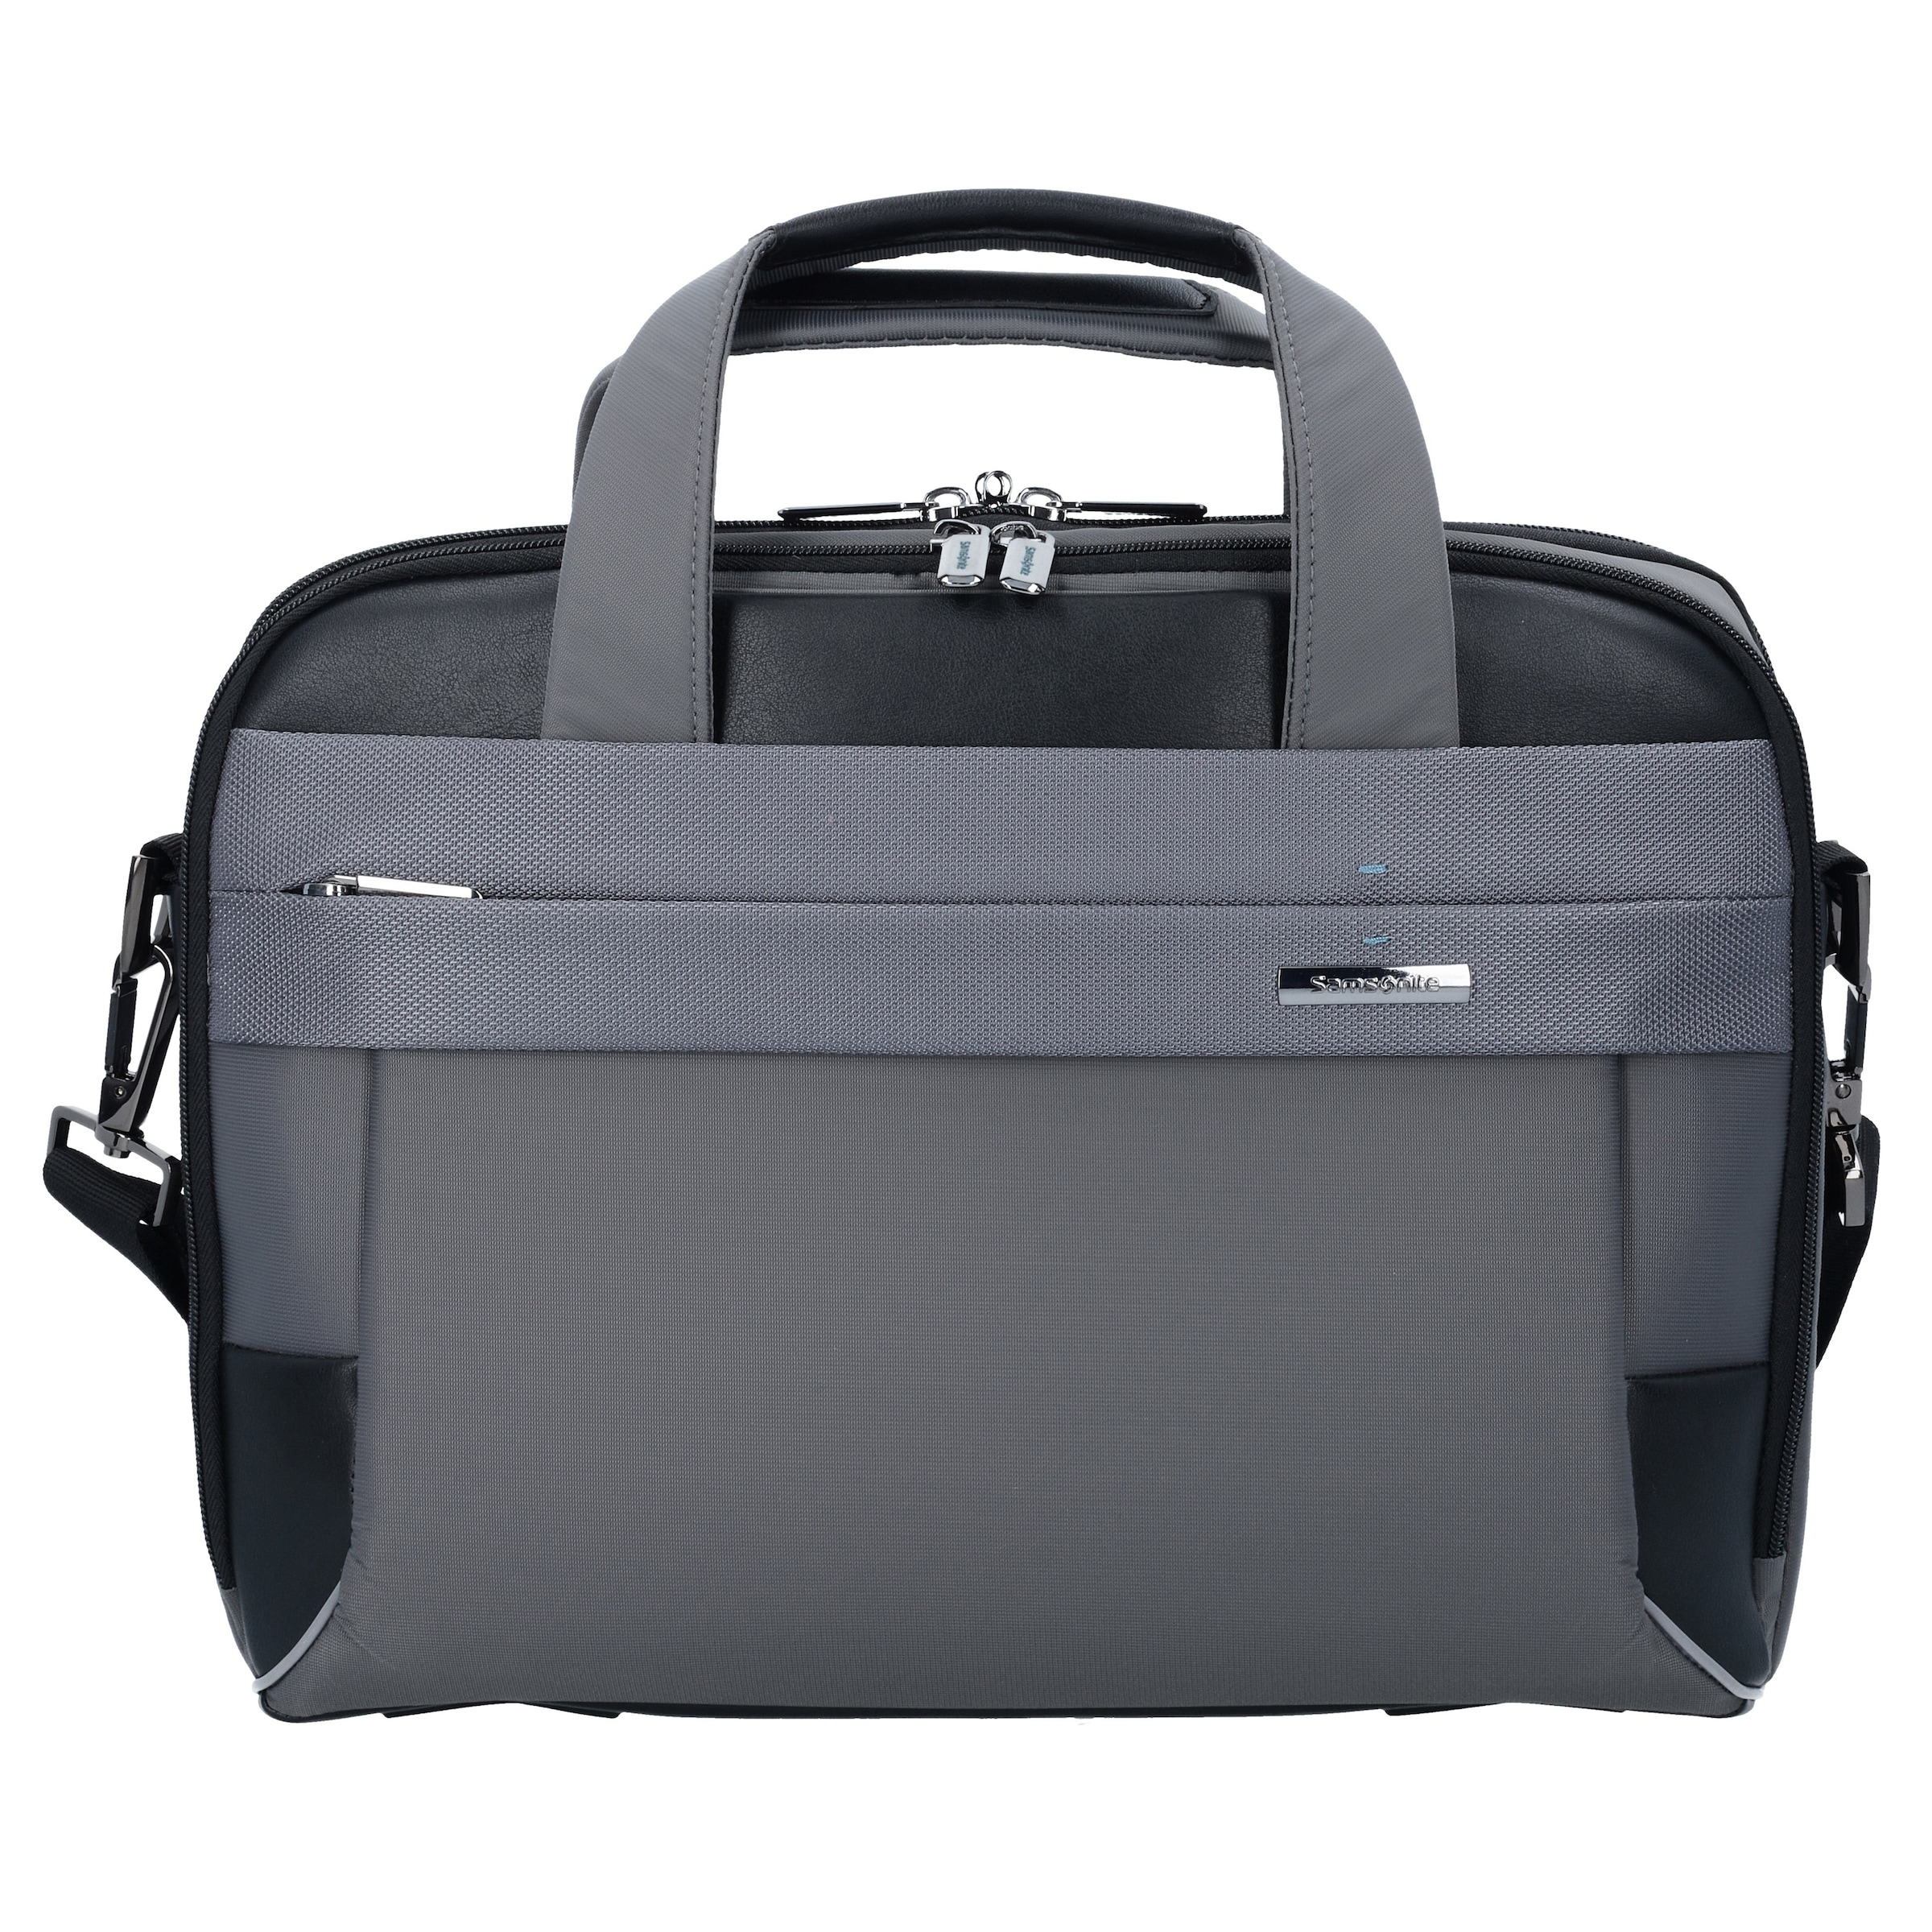 Spectrolite Businesstasche cm Laptopfach SAMSONITE 0 SAMSONITE Spectrolite 36 2 xXBnSOq1